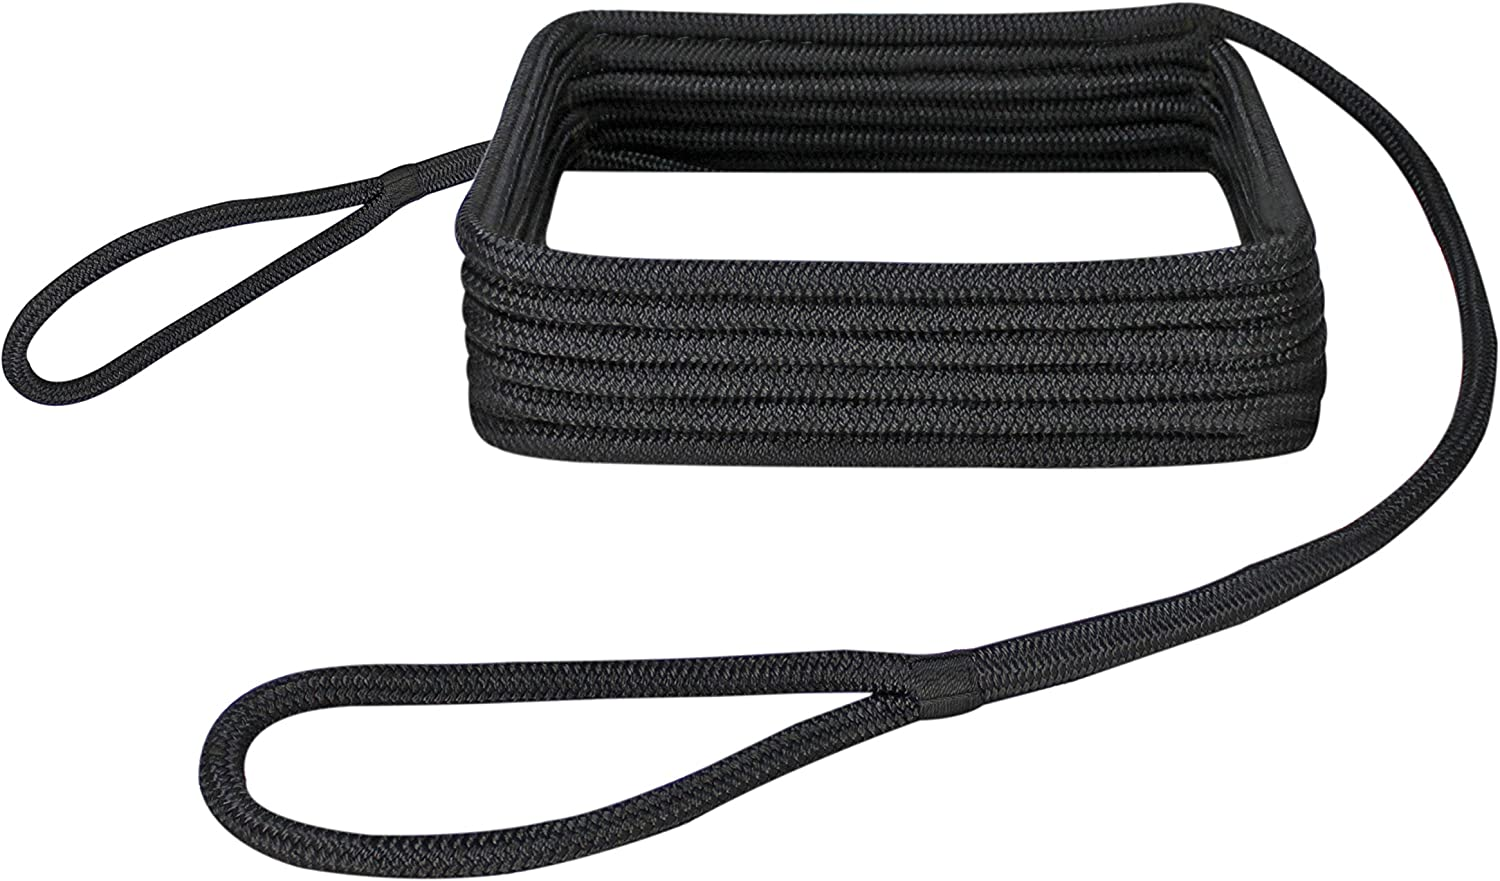 White /& Gold 5//8 x 40 Extreme Max 3006.2385 BoatTector Premium Double Looped Nylon Dock Line for Mooring Buoys